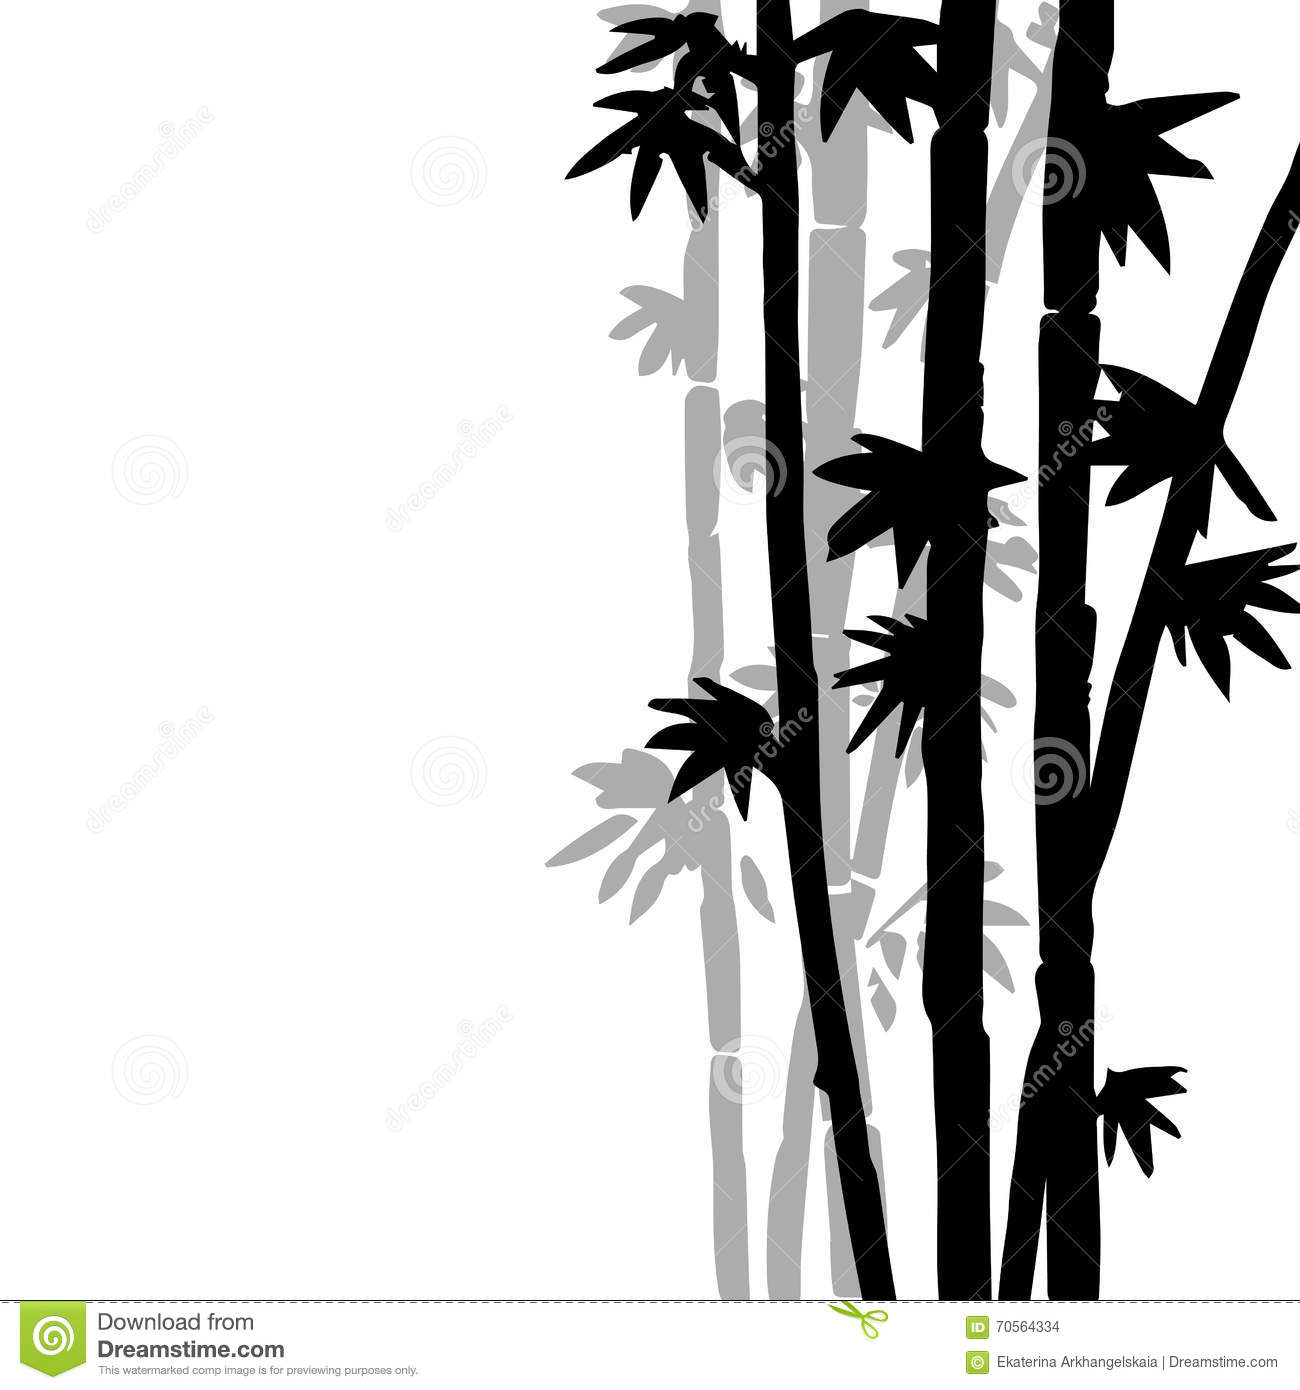 bamboo forest drawing image result for huts in bamboo forest fantasy art drawing bamboo forest